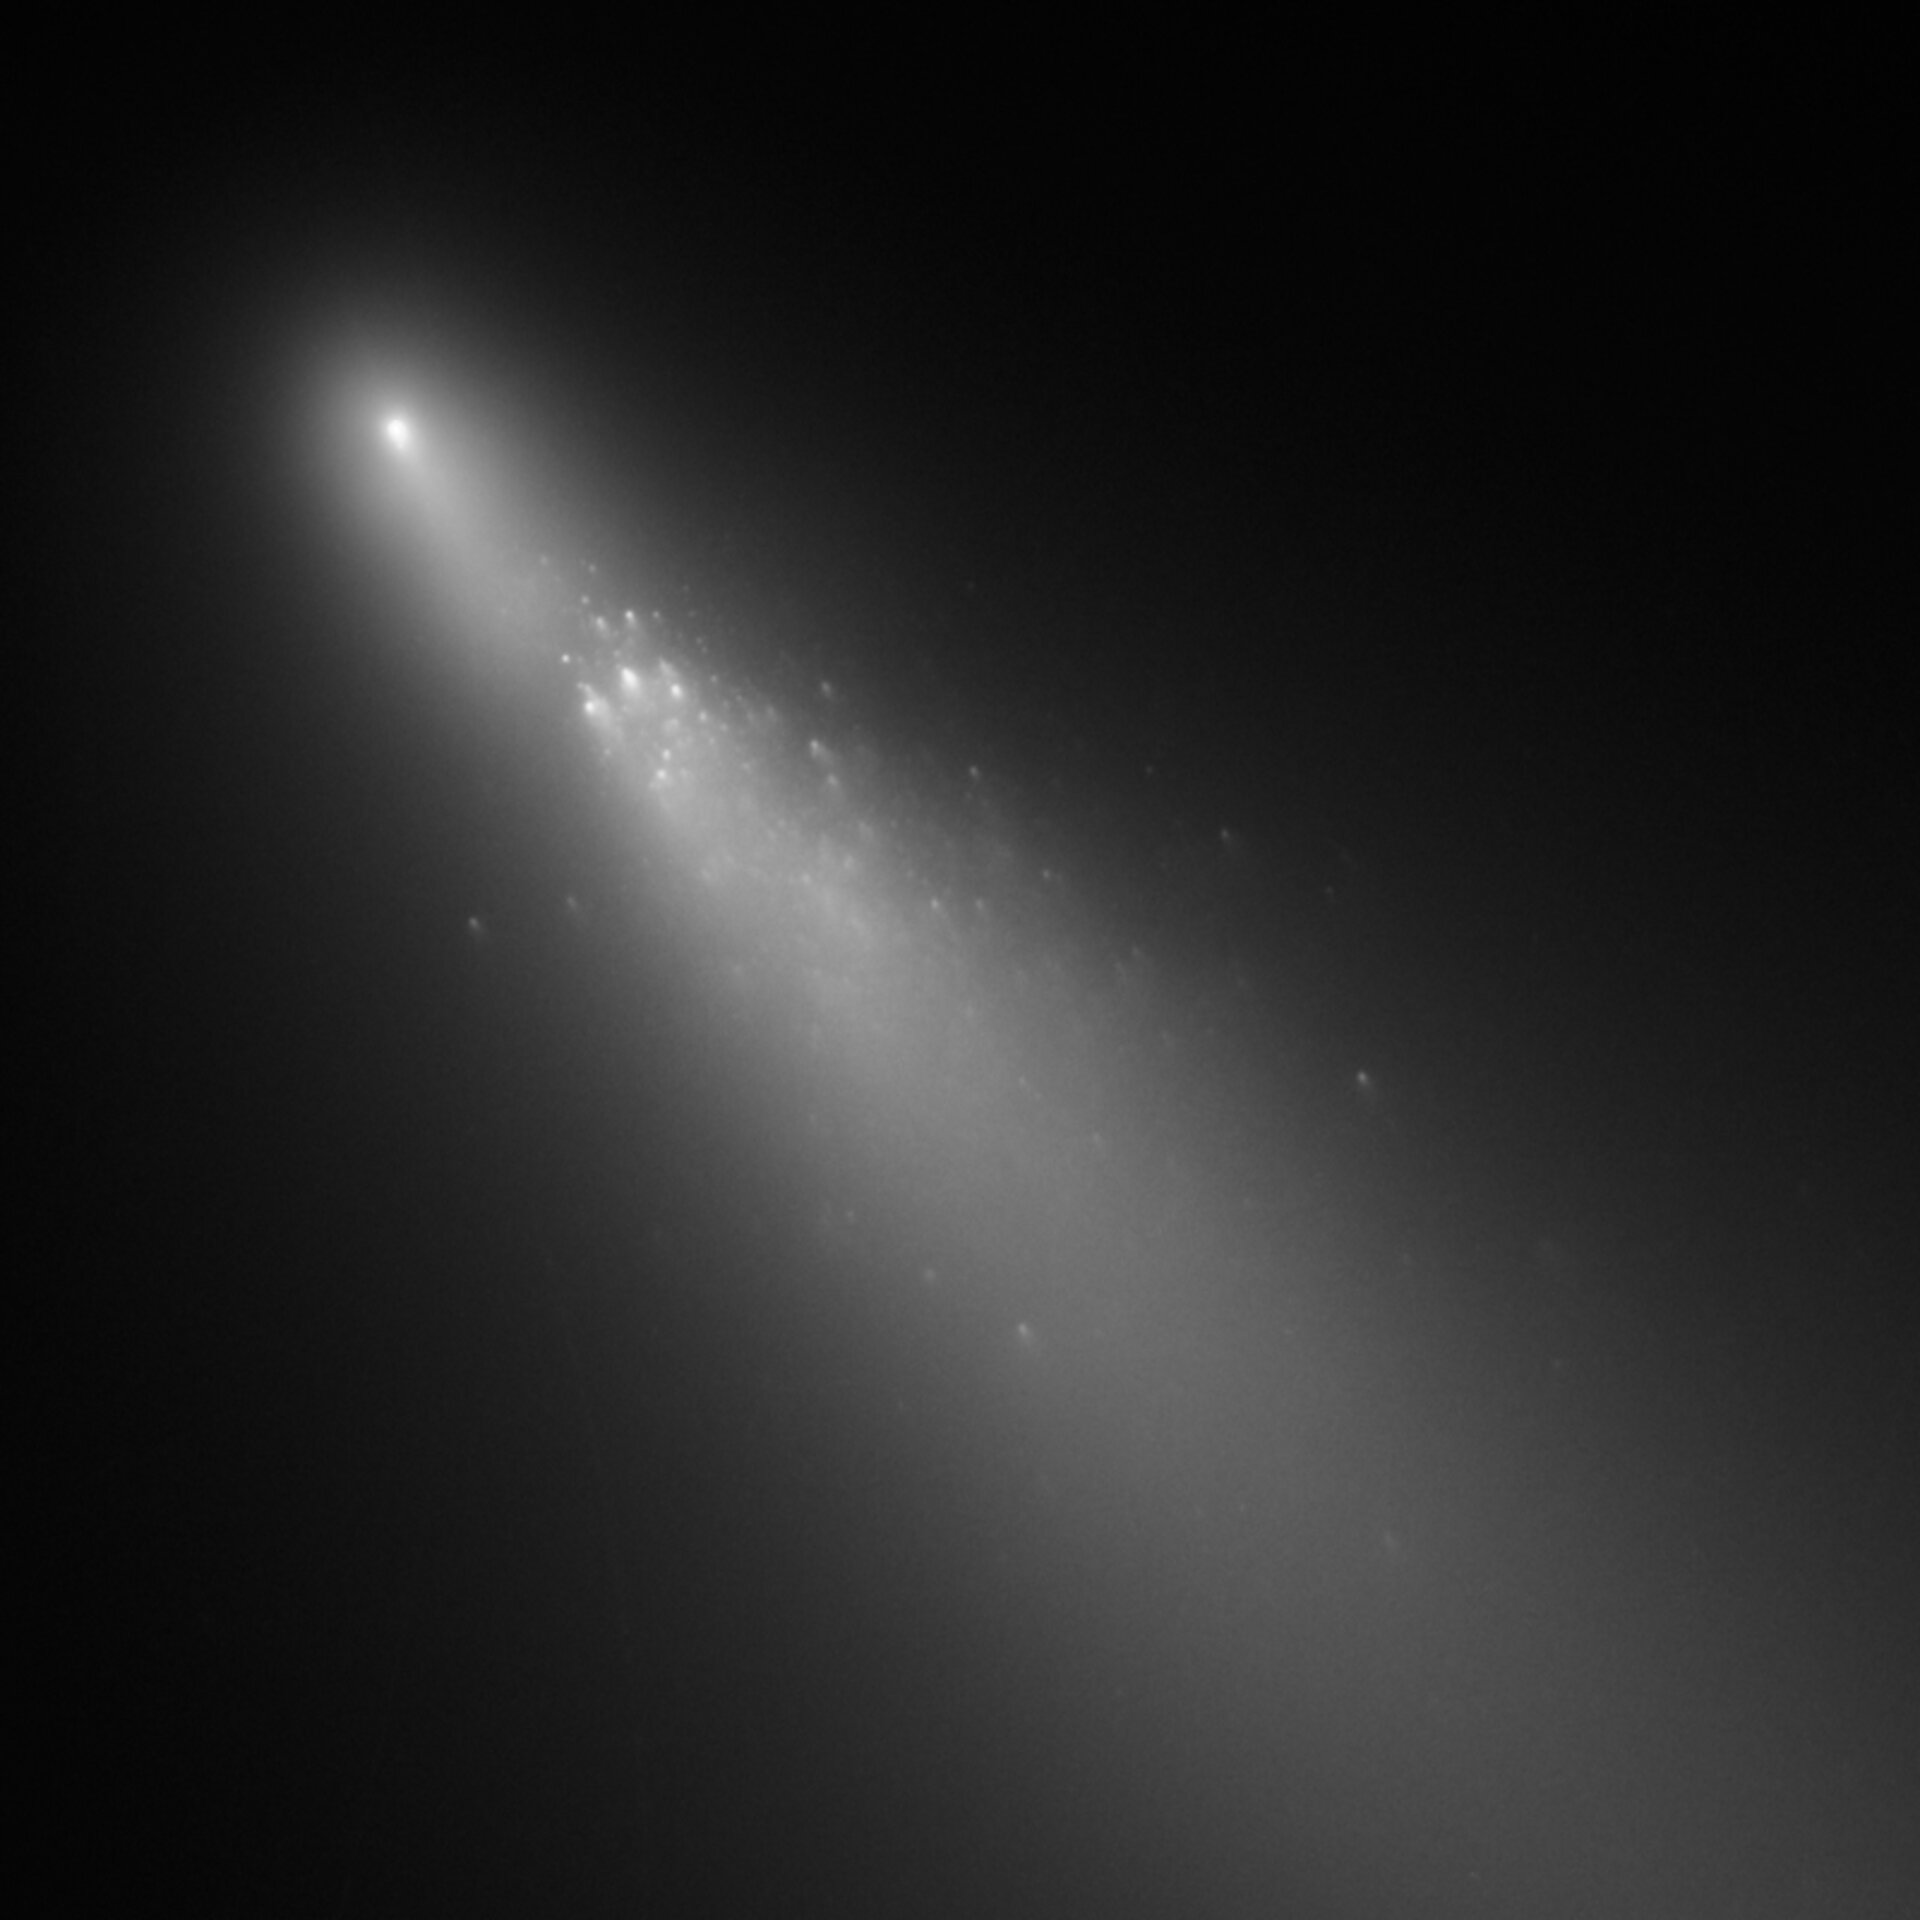 Another view of fragment 'B' of Comet 73P/Schwassmann-Wachmann